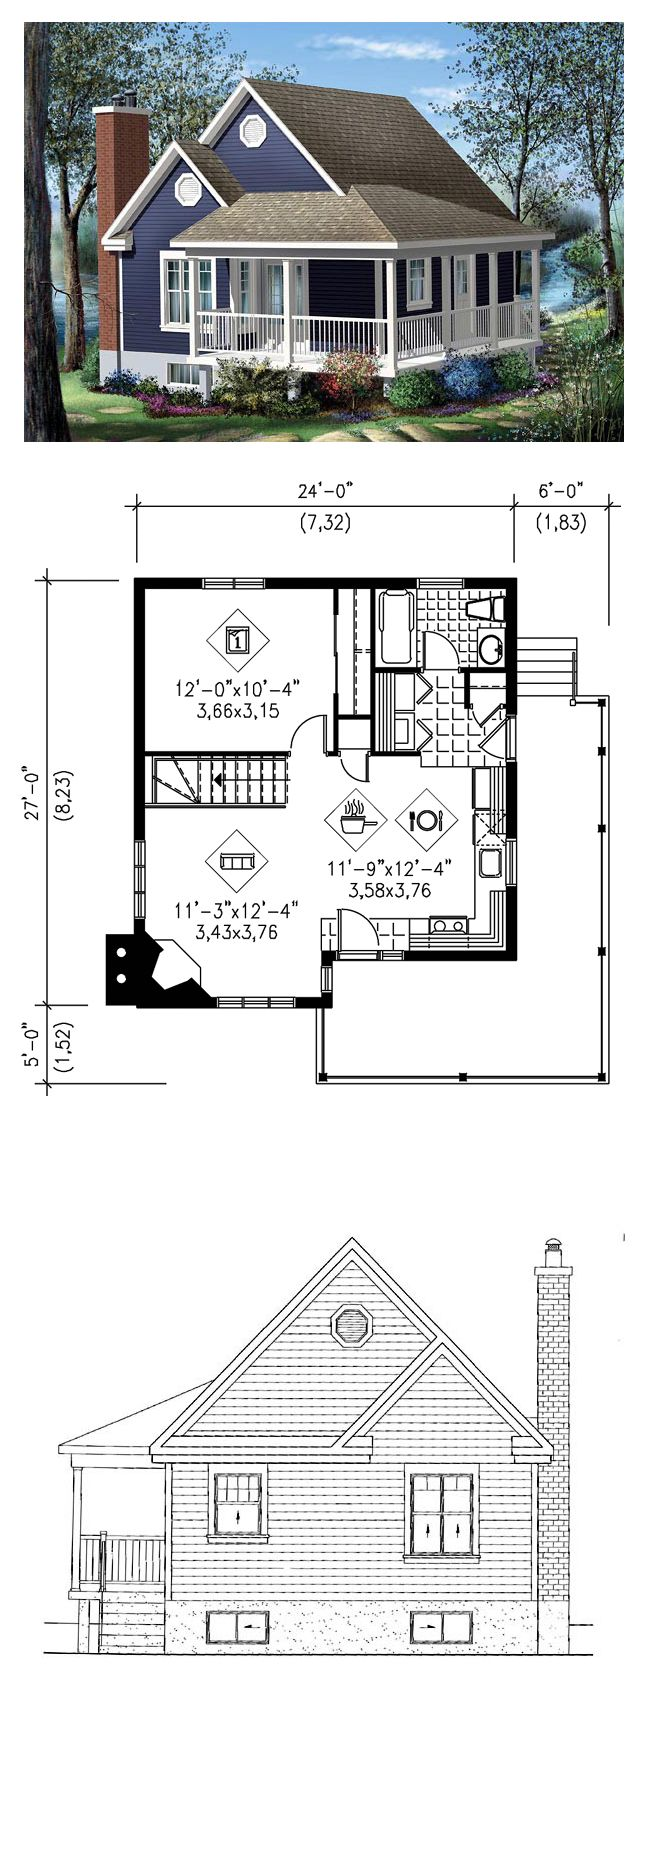 Http Tcnjaaa Org Plans Narrowlot Homeplan 6020 Measures 24 By 24 With Two Bedrooms 1 Html